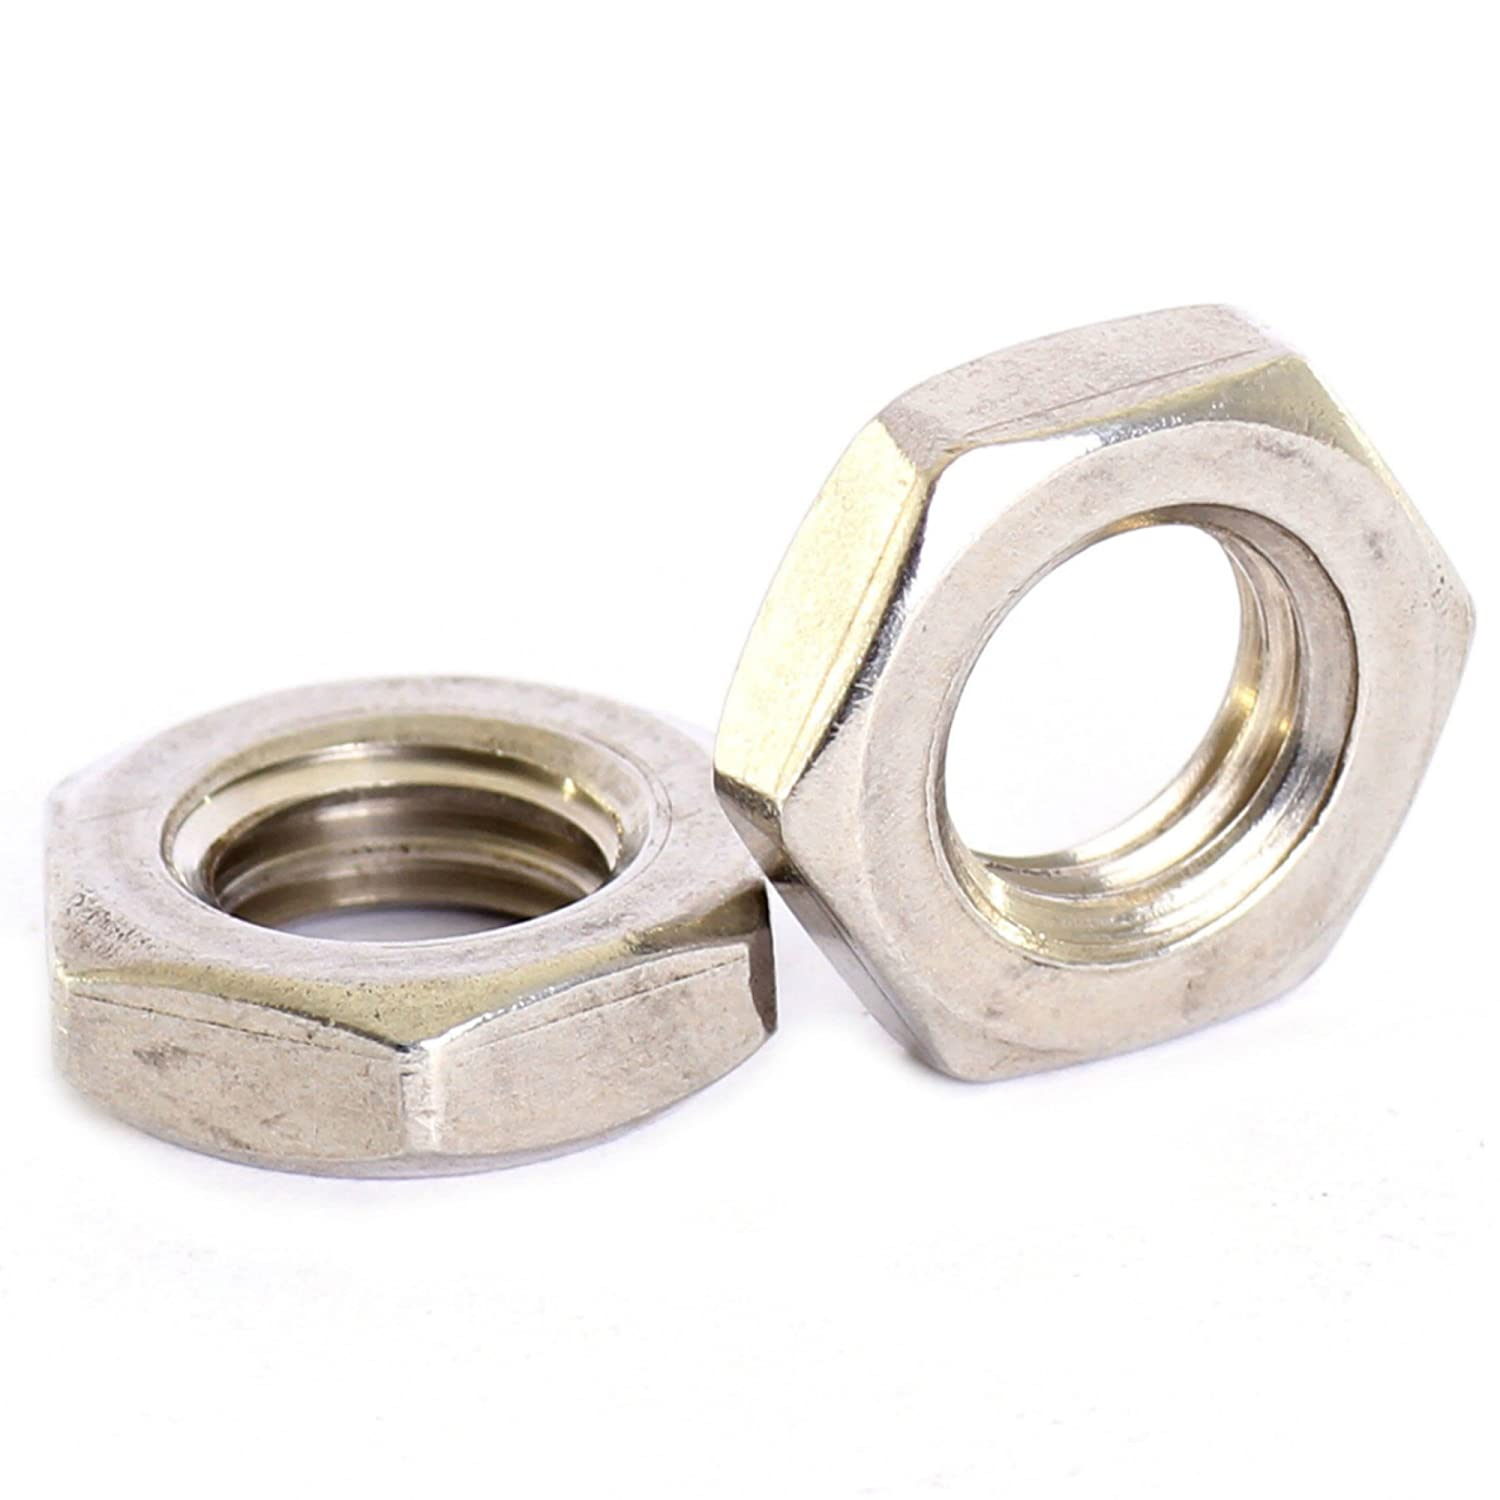 Bolt Base 10mm A2 Stainless Steel Fine Pitch Hexagon Half Lock Nuts Hex Thin Nut DIN 439 M10 X 1.0mm - 5